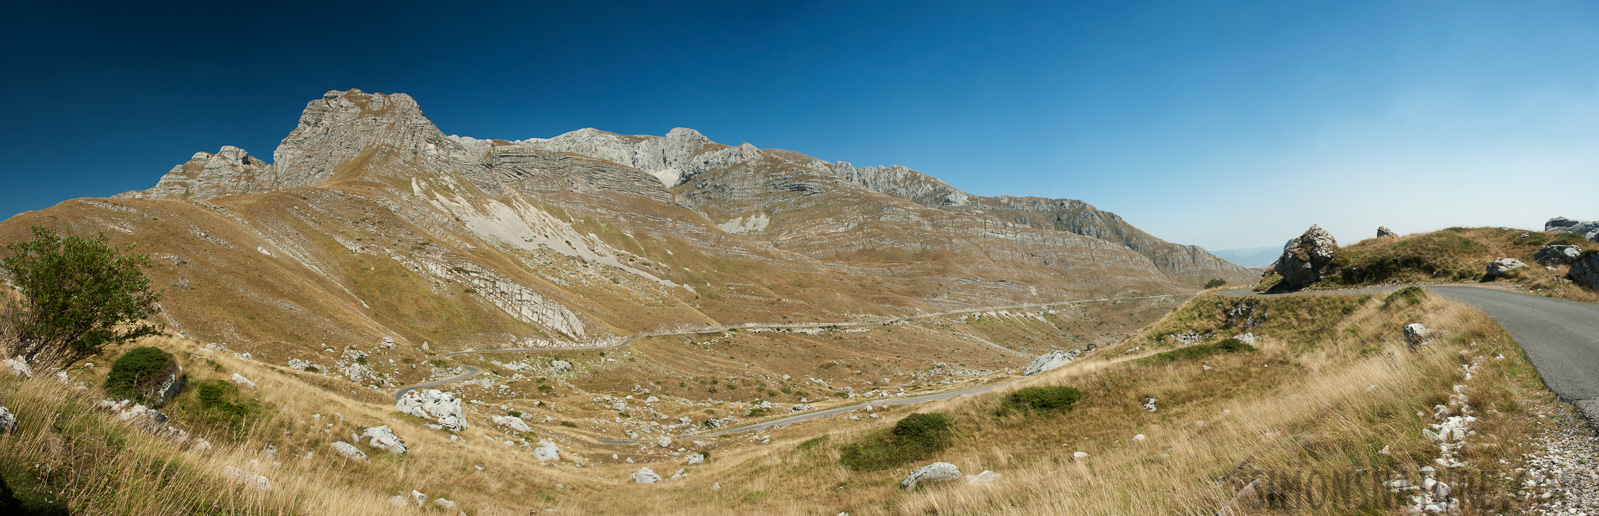 Montenegro - In the region of the Durmitor massif [28 mm, 1/80 sec at f / 18, ISO 400]